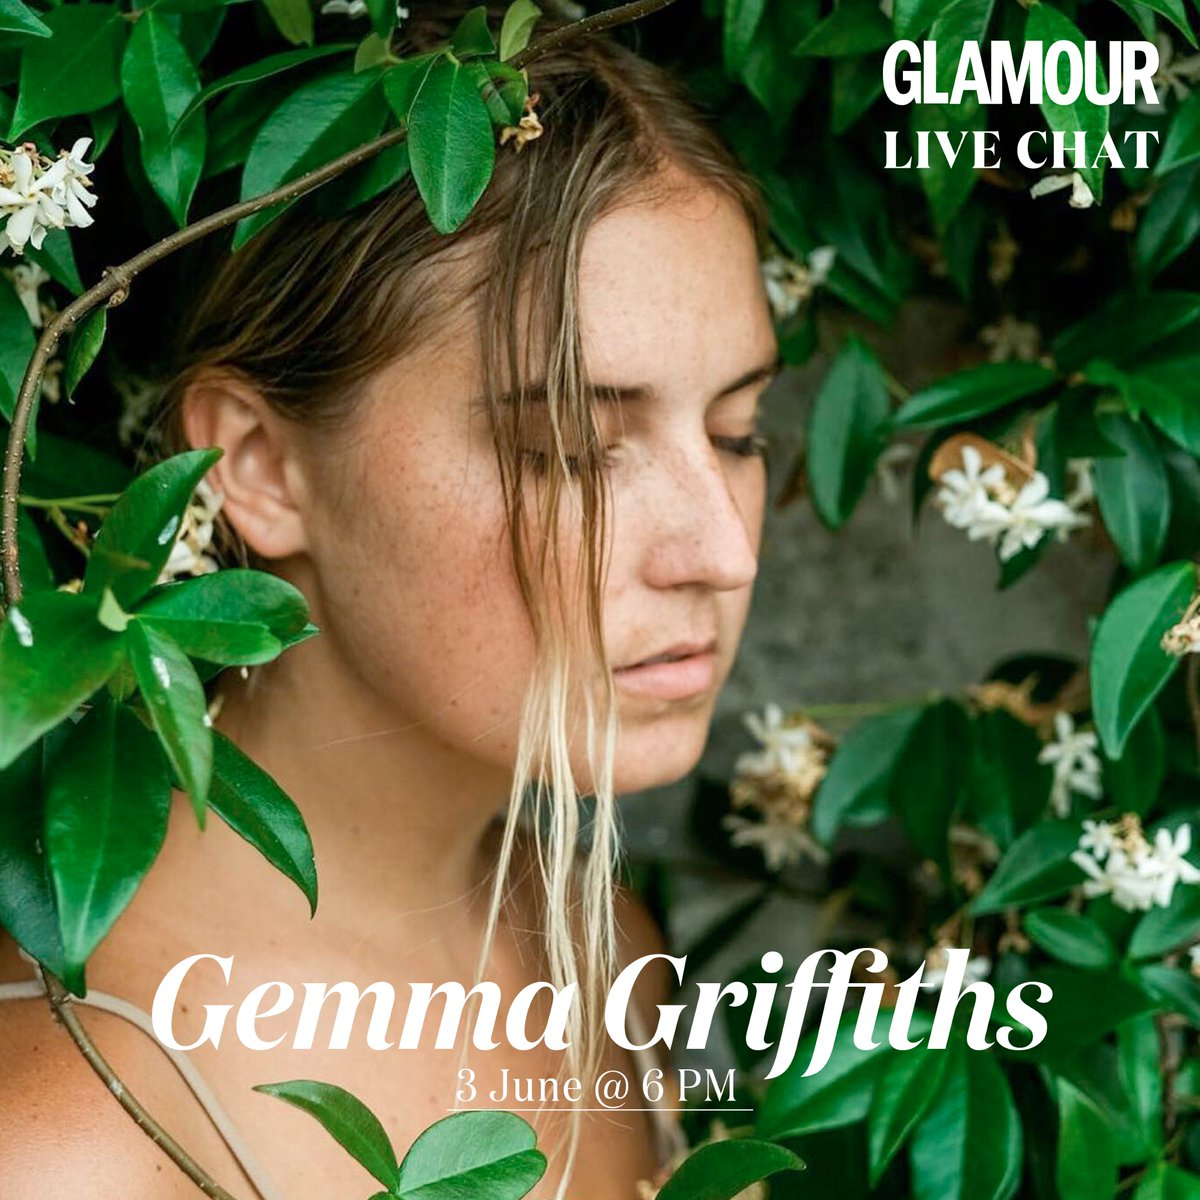 🚦🚦Hey Fam, please join  #Zimbabwe's @gemmamusic_ TONIGHT at 6pm on @GLAMOUR_sa InstaLive.  @Instagram @kubatana @263Chat @iMisred @LOCHNATION @AmmaraBrown @ZimEye @zimlive @OldMutualZW @StarfmZimbabwe @ZiFMStereo @taponeswa @verified @CondeNast https://t.co/VI1P8uqPaZ